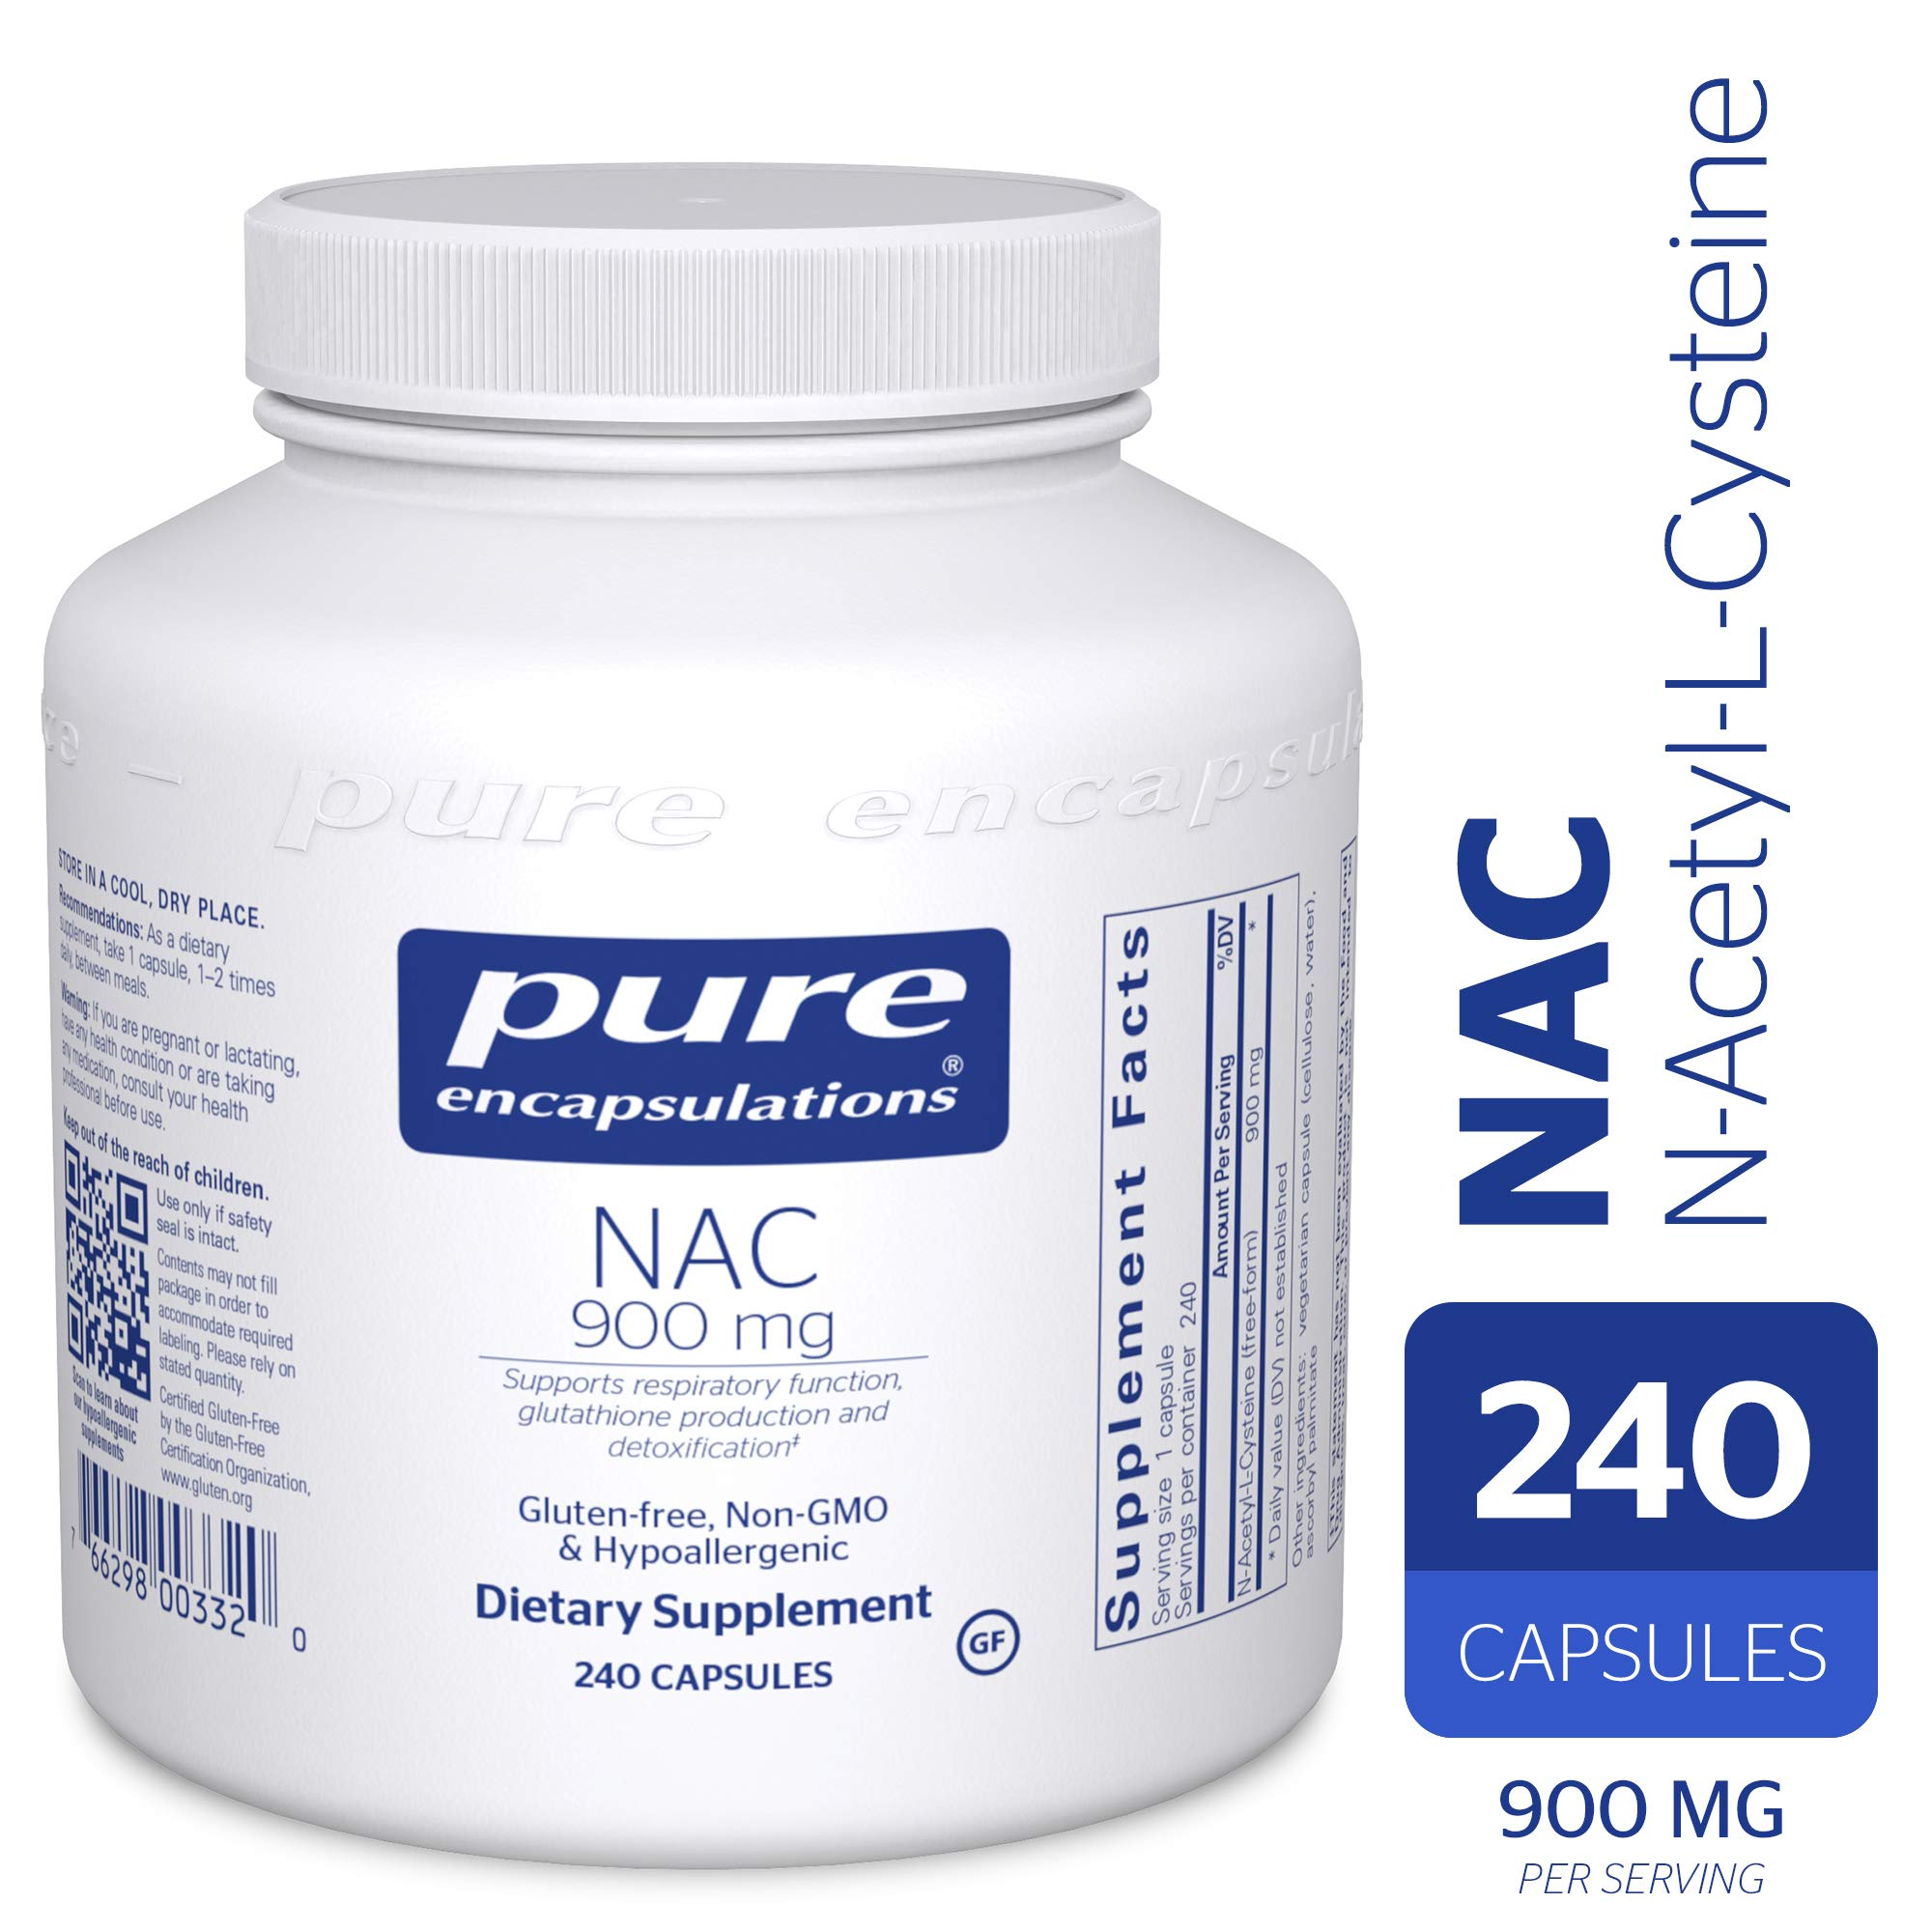 Pure Encapsulations - NAC (N-Acetyl-L-Cysteine) 900 mg - Amino Acids to Support Antioxidant Defense and Healthy Lung Tissue - 240 Capsules